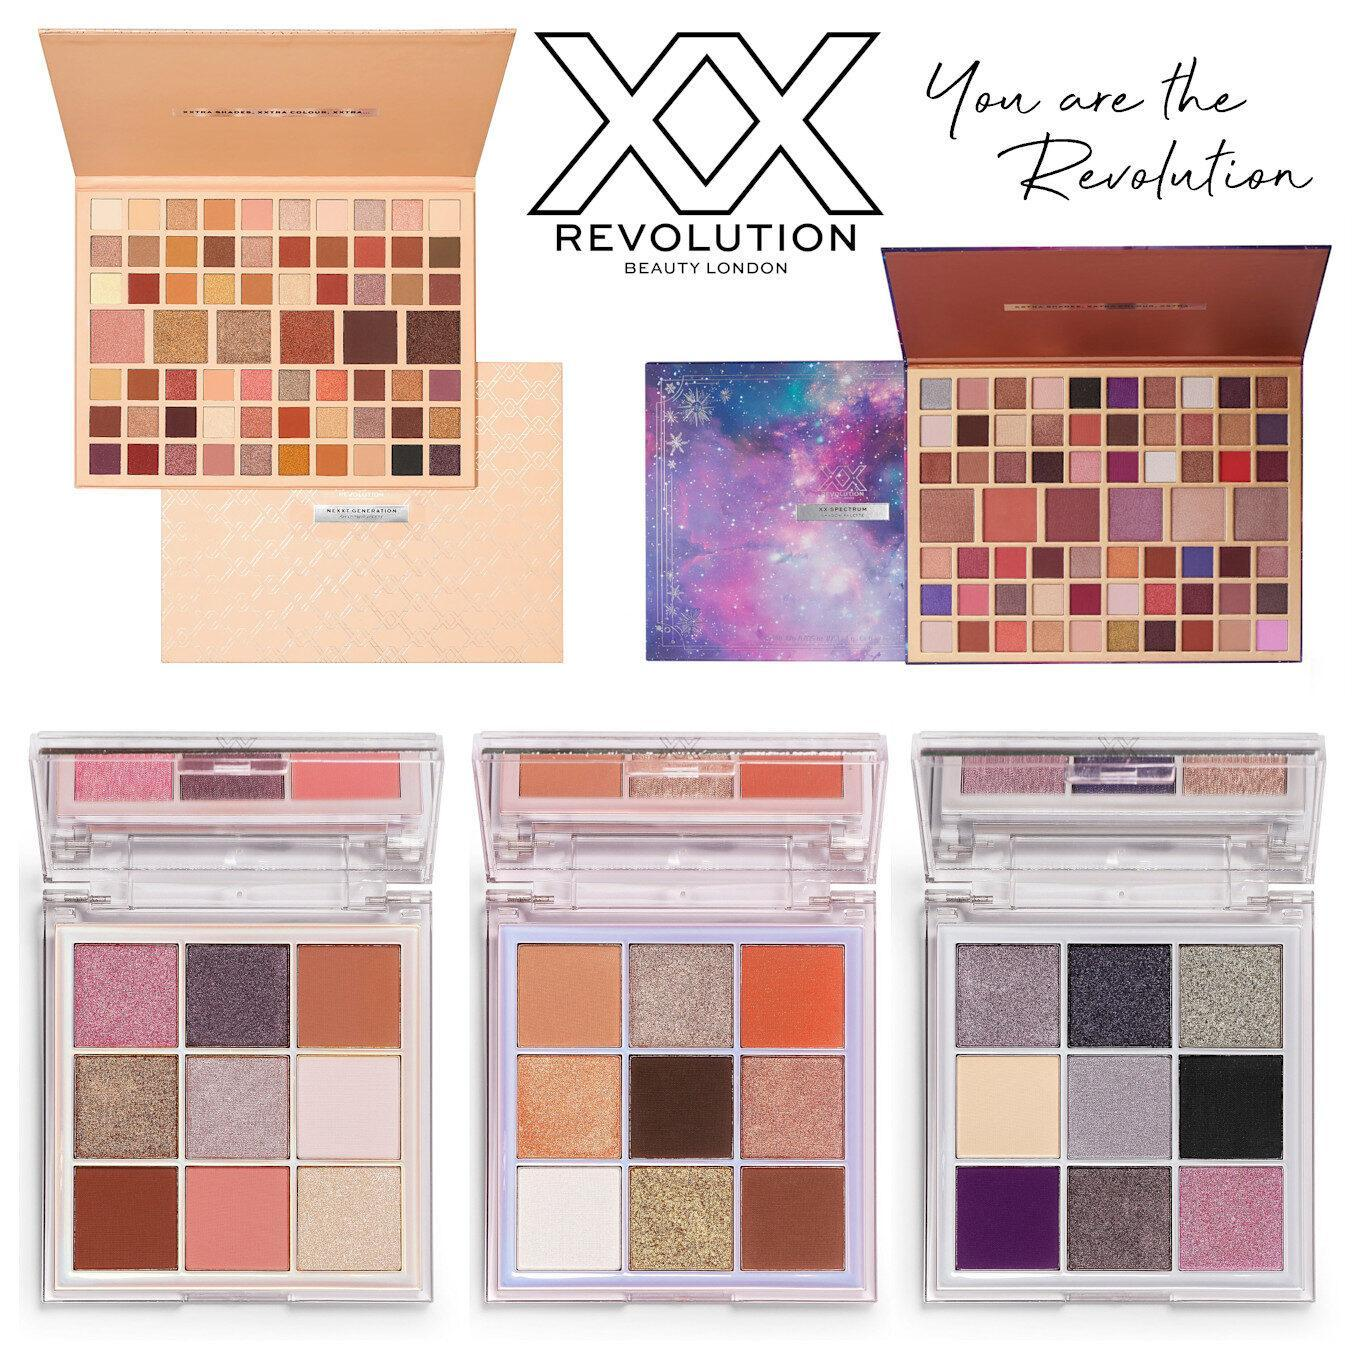 XX Revolution New Eyeshadow Palettes October 2020 Post Cover